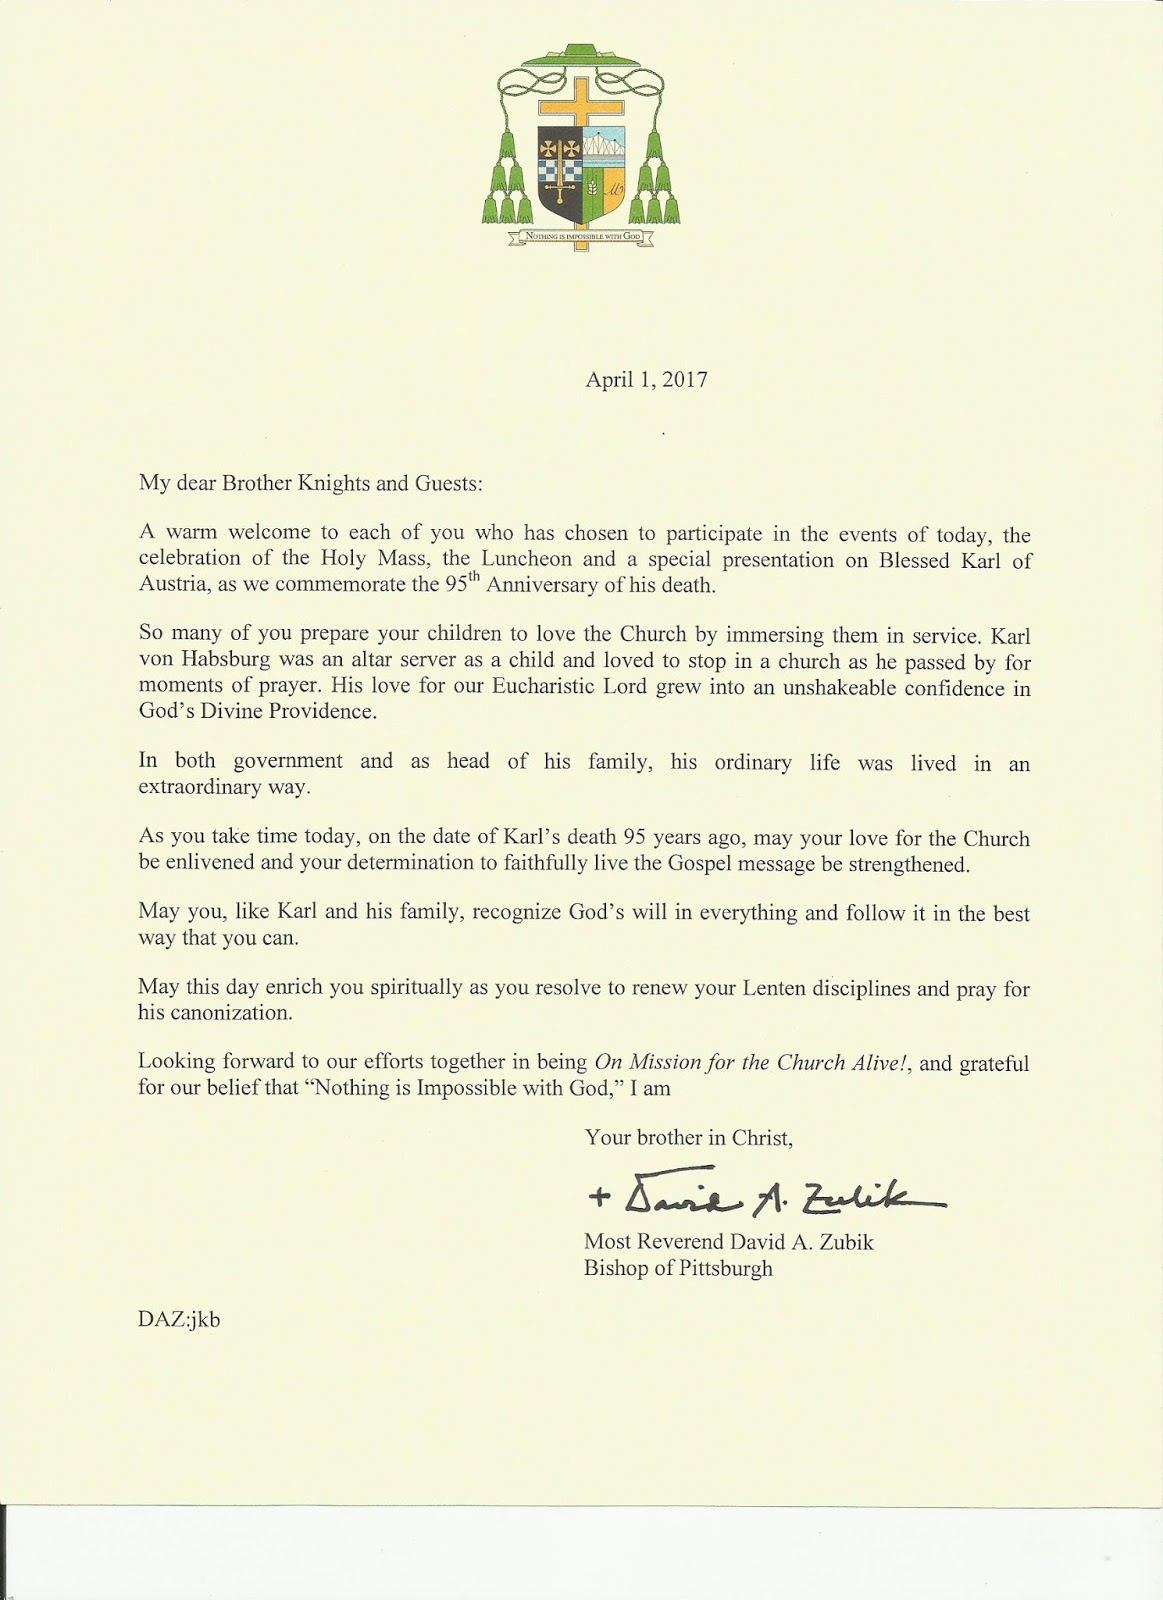 Knights of columbus latin mass april 2017 letter of greeting from most reverend david a zubik bishop of pittsburgh kristyandbryce Gallery